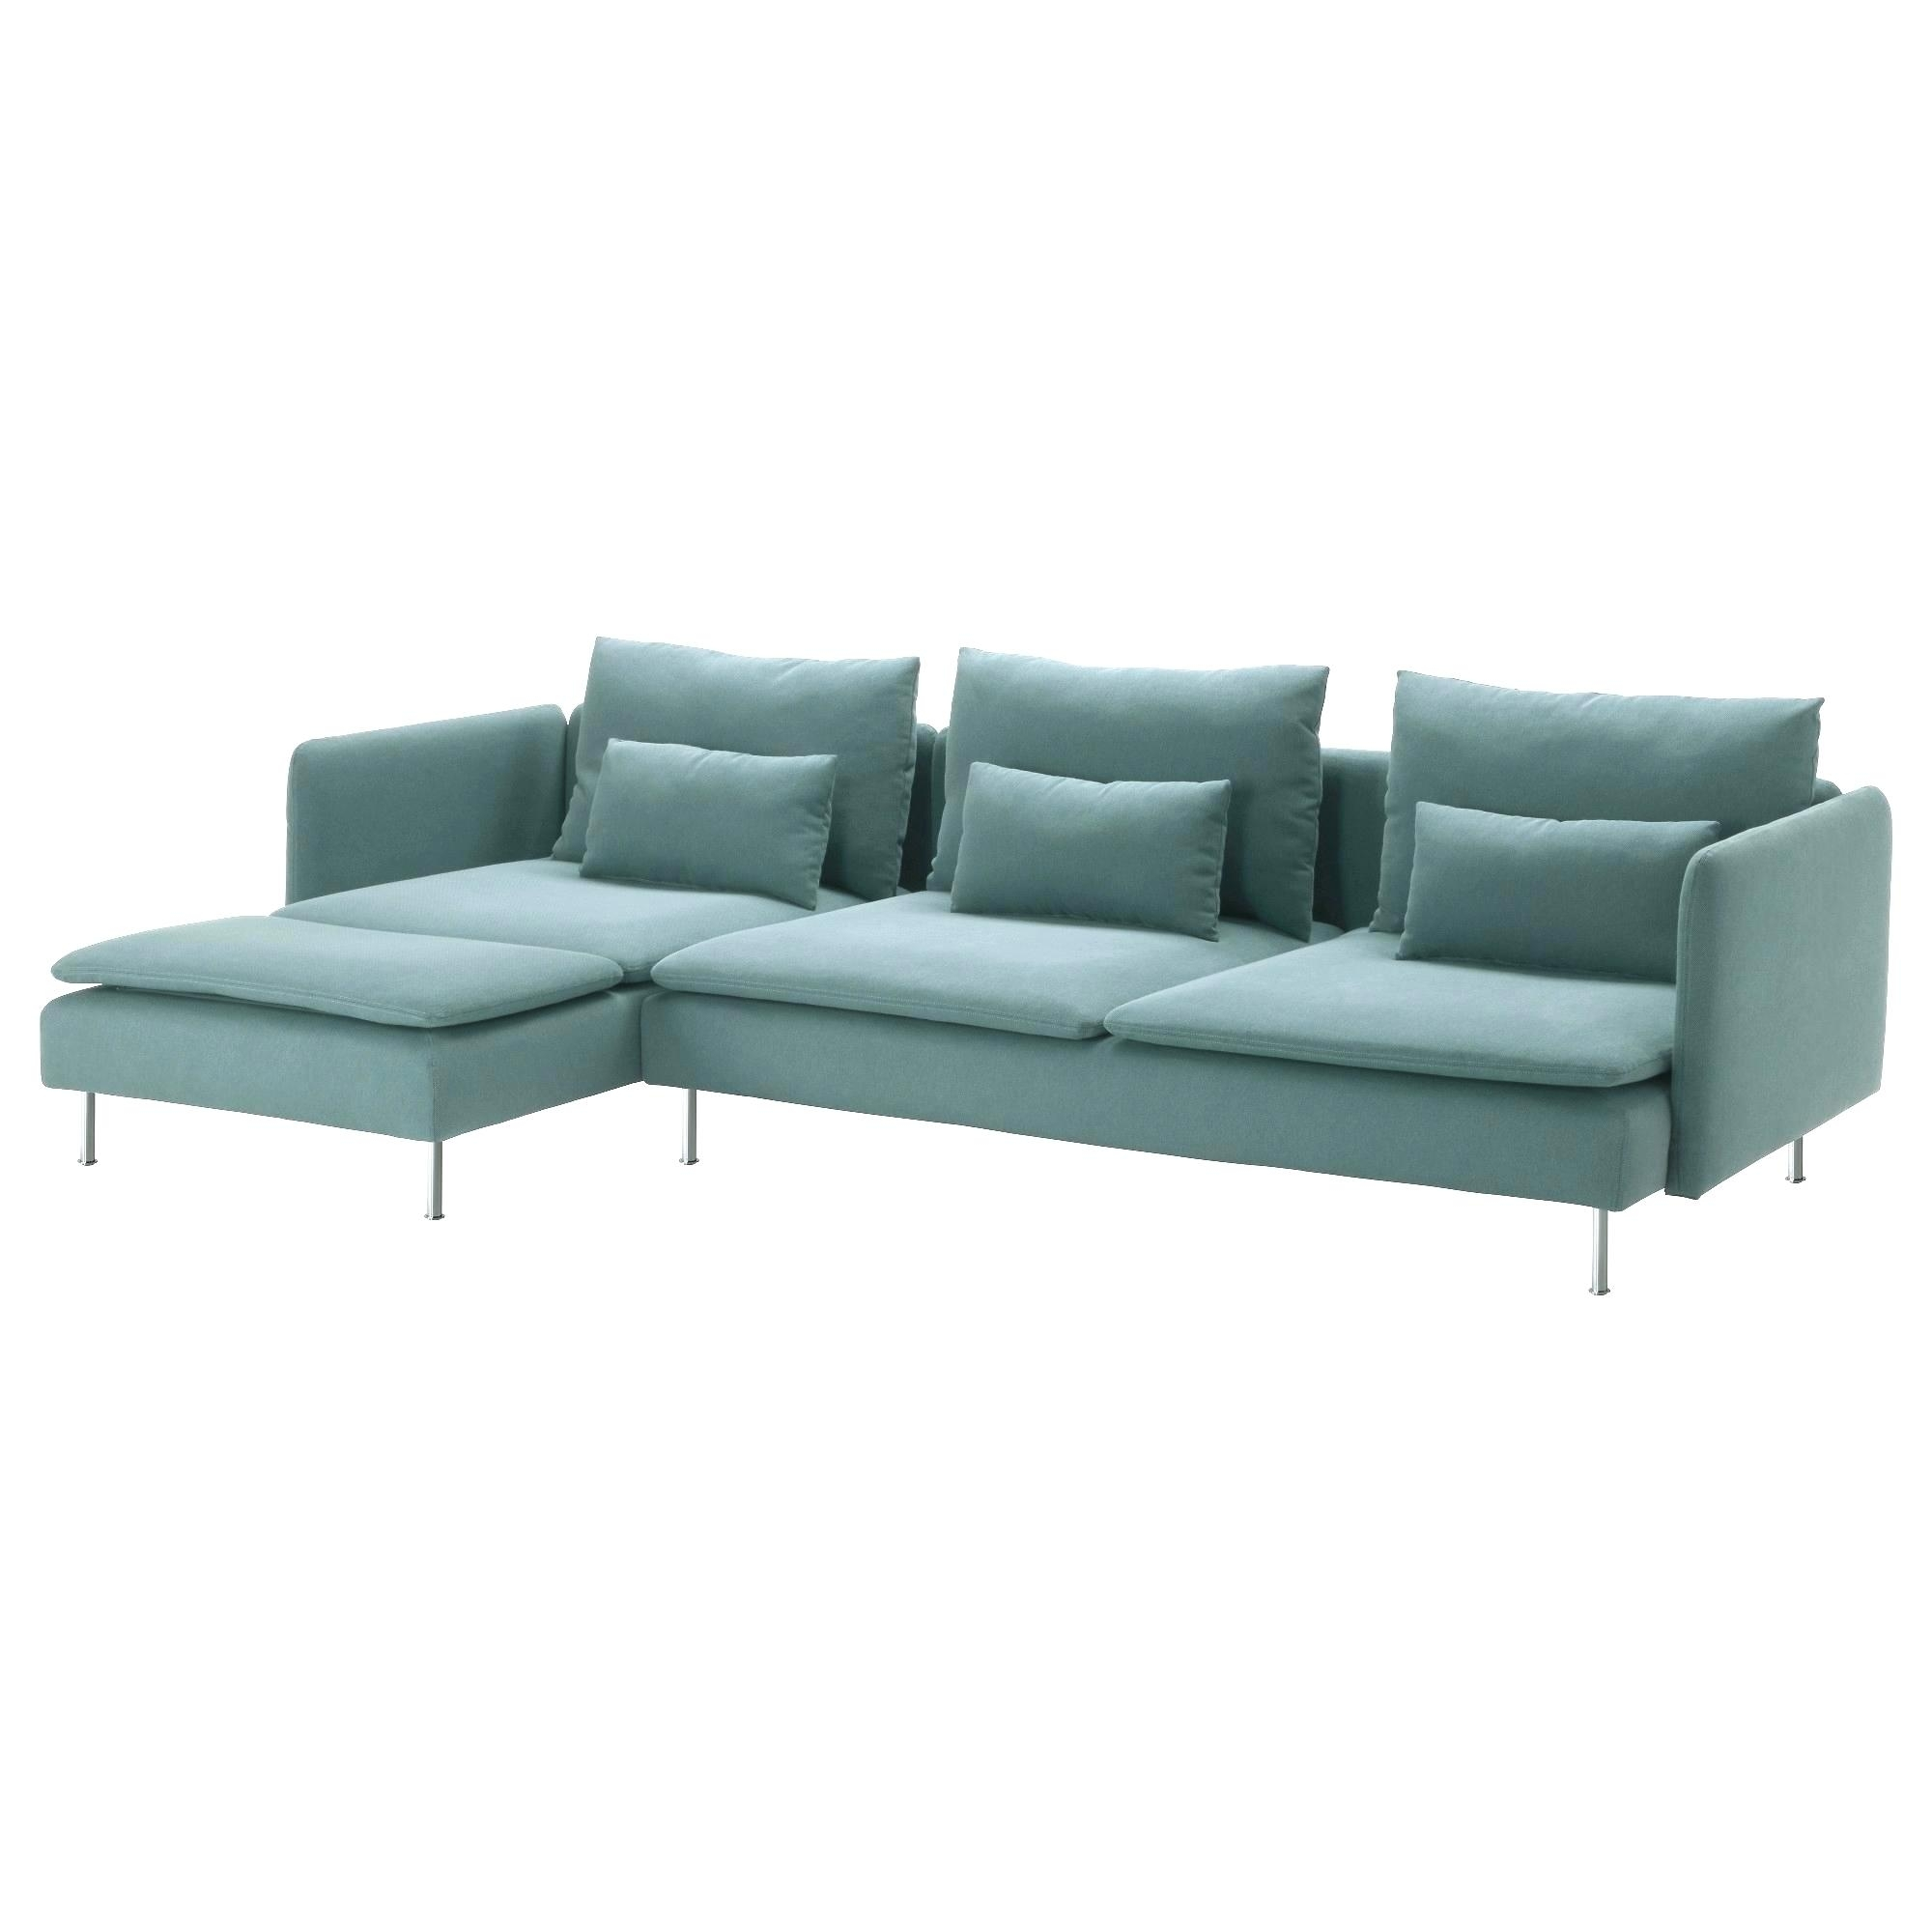 Slipcover Furniture Vancouver: 10 Best Ideas Vancouver Bc Canada Sectional Sofas